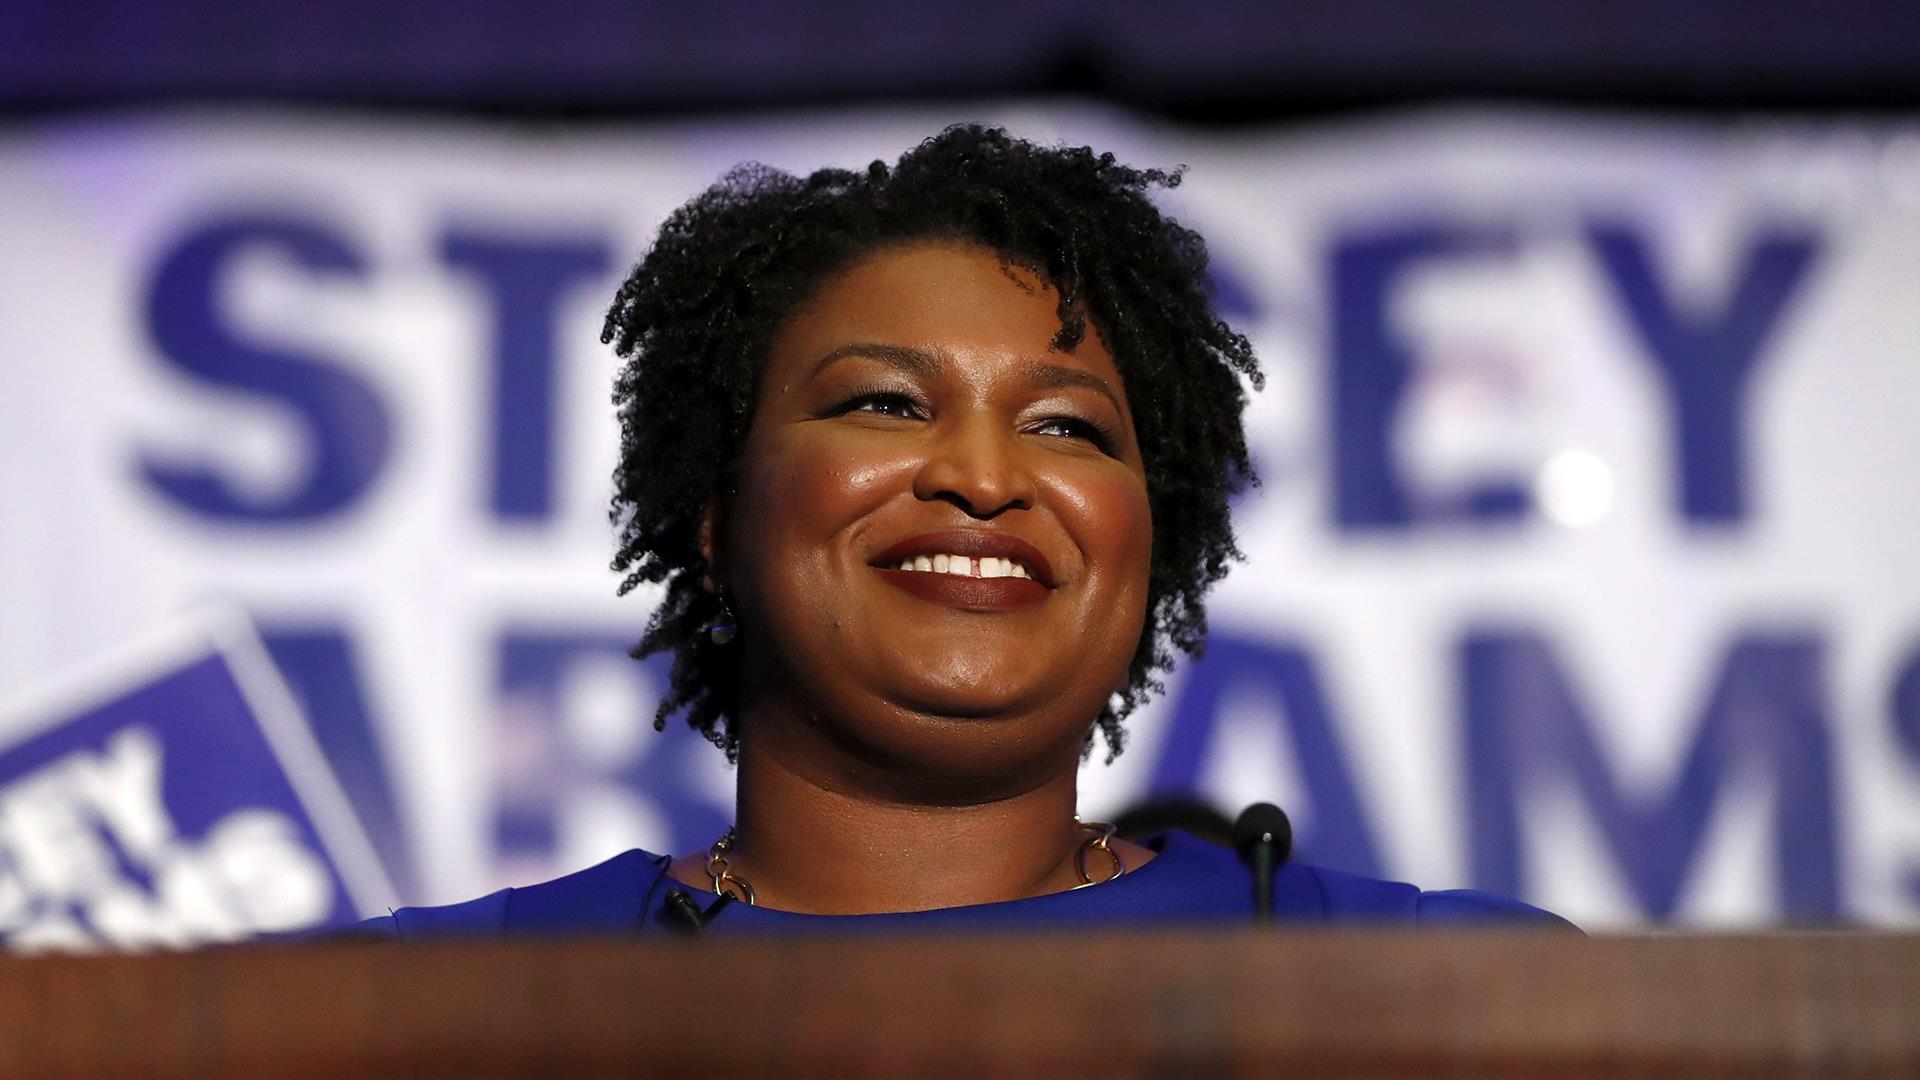 Stacey Abrams Becomes First Black Woman to be Nominated for Governor